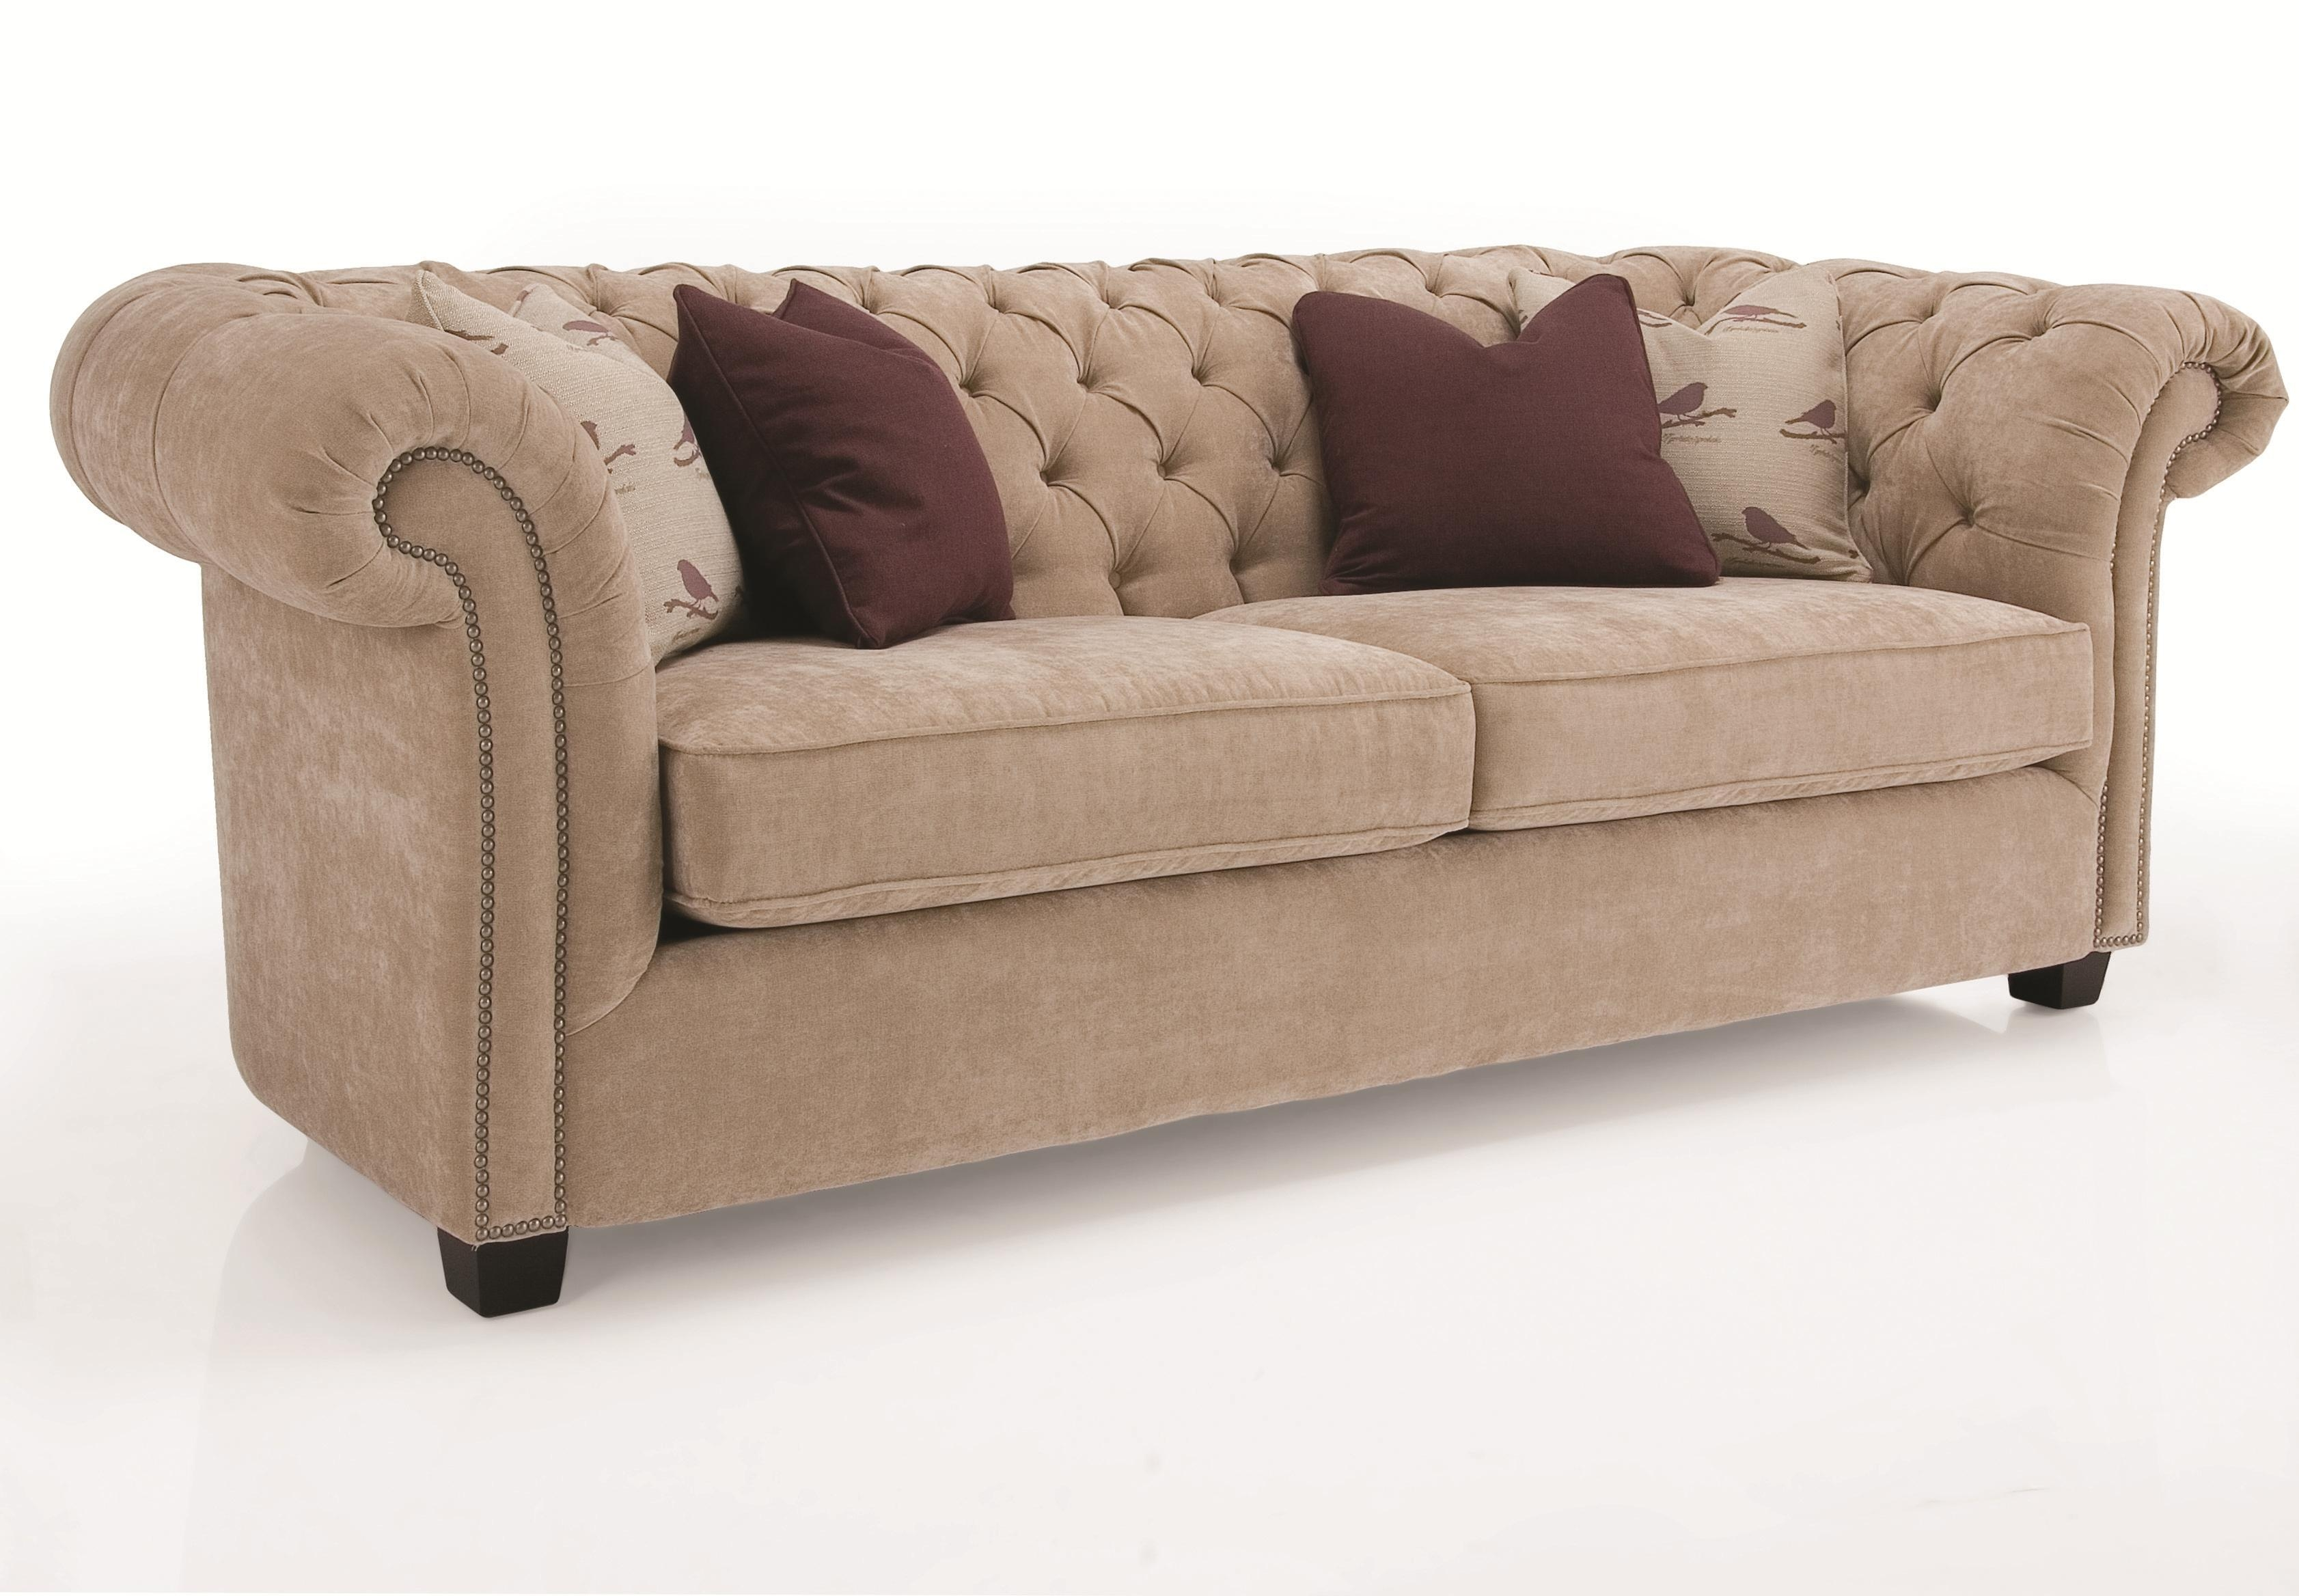 Churchill Sofa – Hereo Sofa Pertaining To Churchill Sofas (Image 11 of 20)